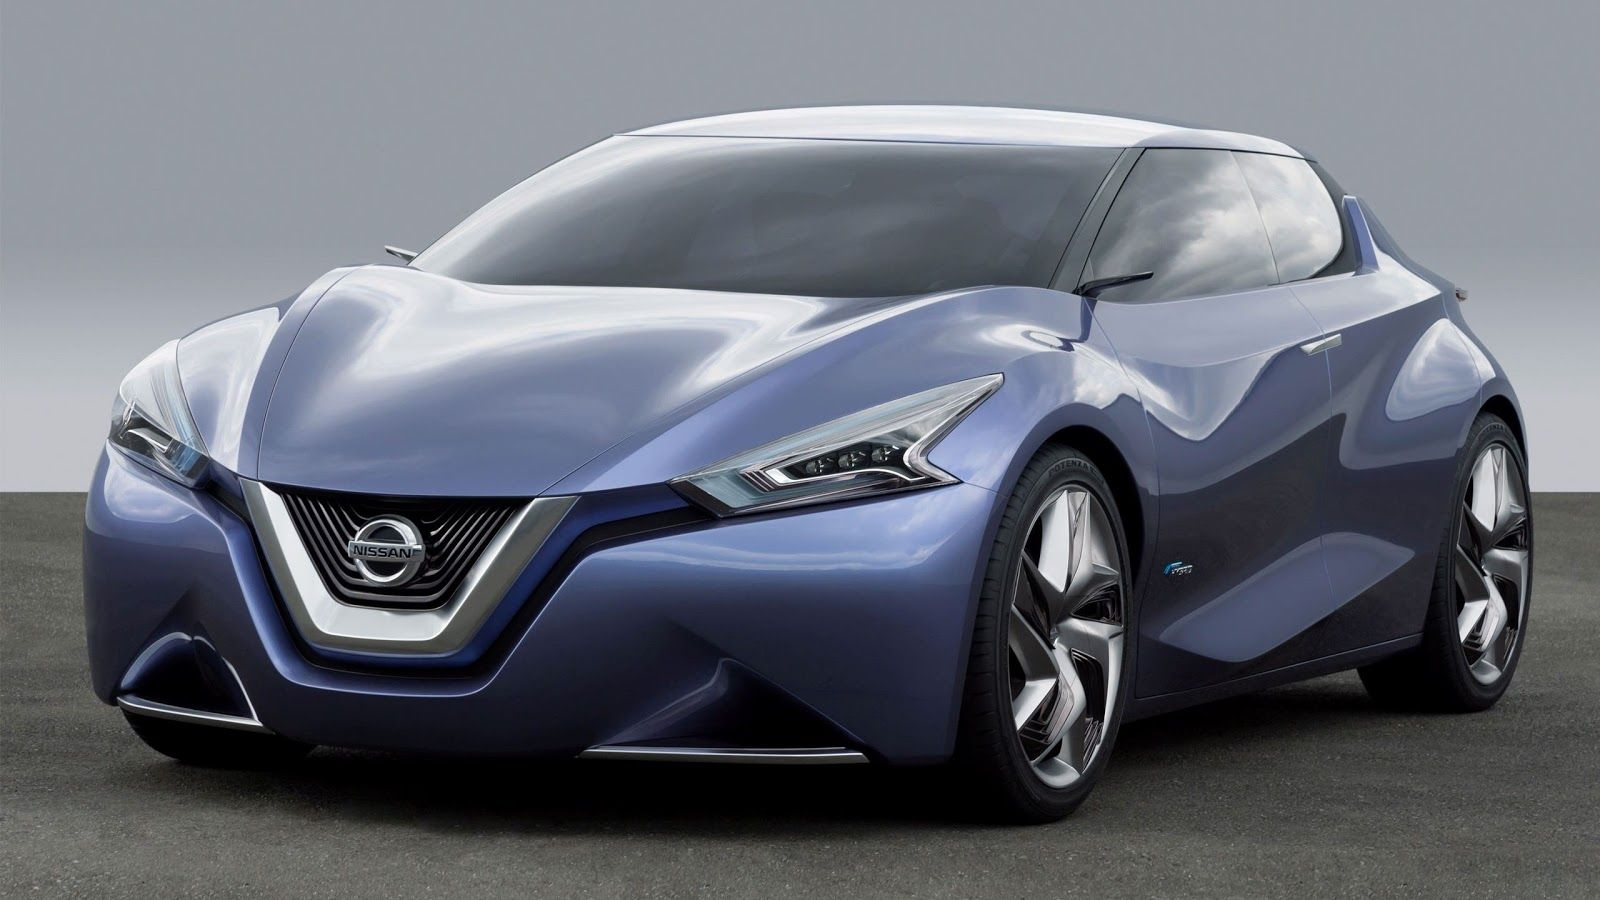 cool nissan maxima 2016 car images hd 2016 Nissan Altima